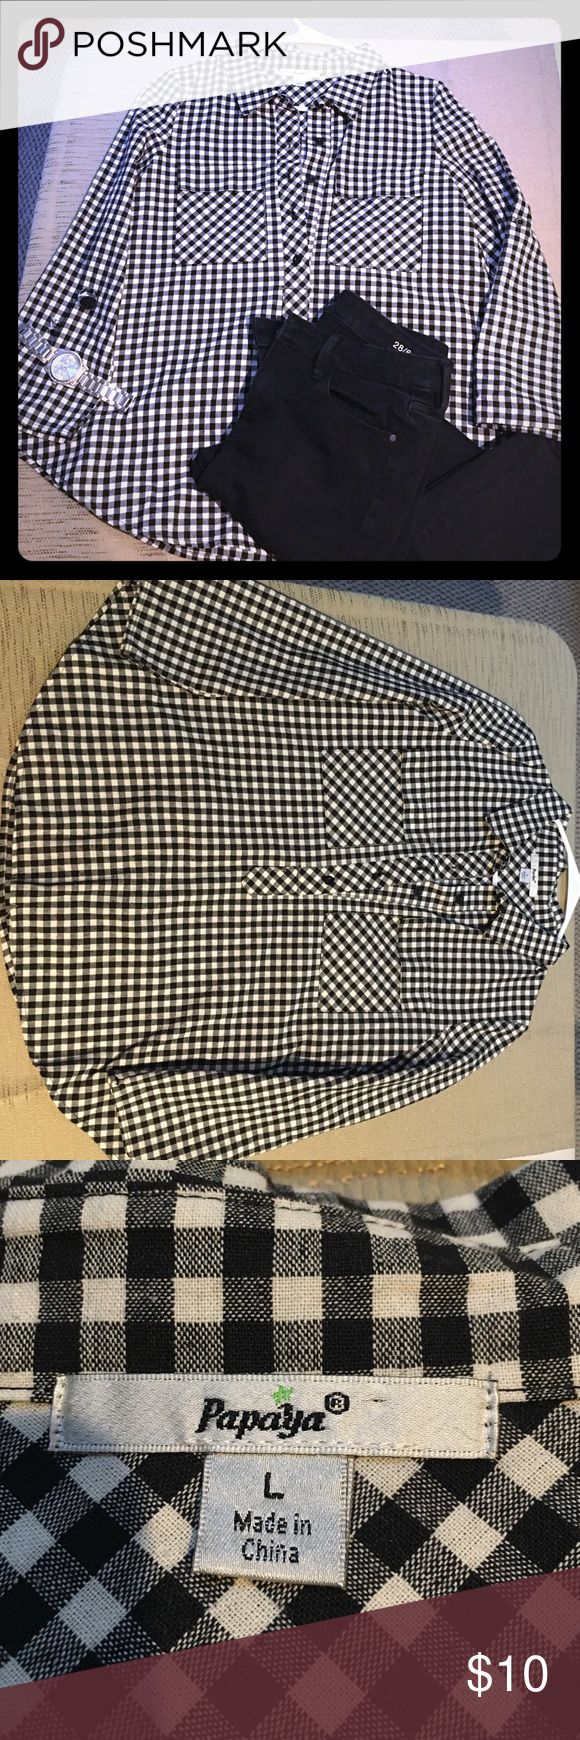 B&W Checkered flannel style shirt Black & white Checkered flannel style shirt. Never worn! Super cute! Loose fit with flared bottom Papaya Tops Button Down Shirts